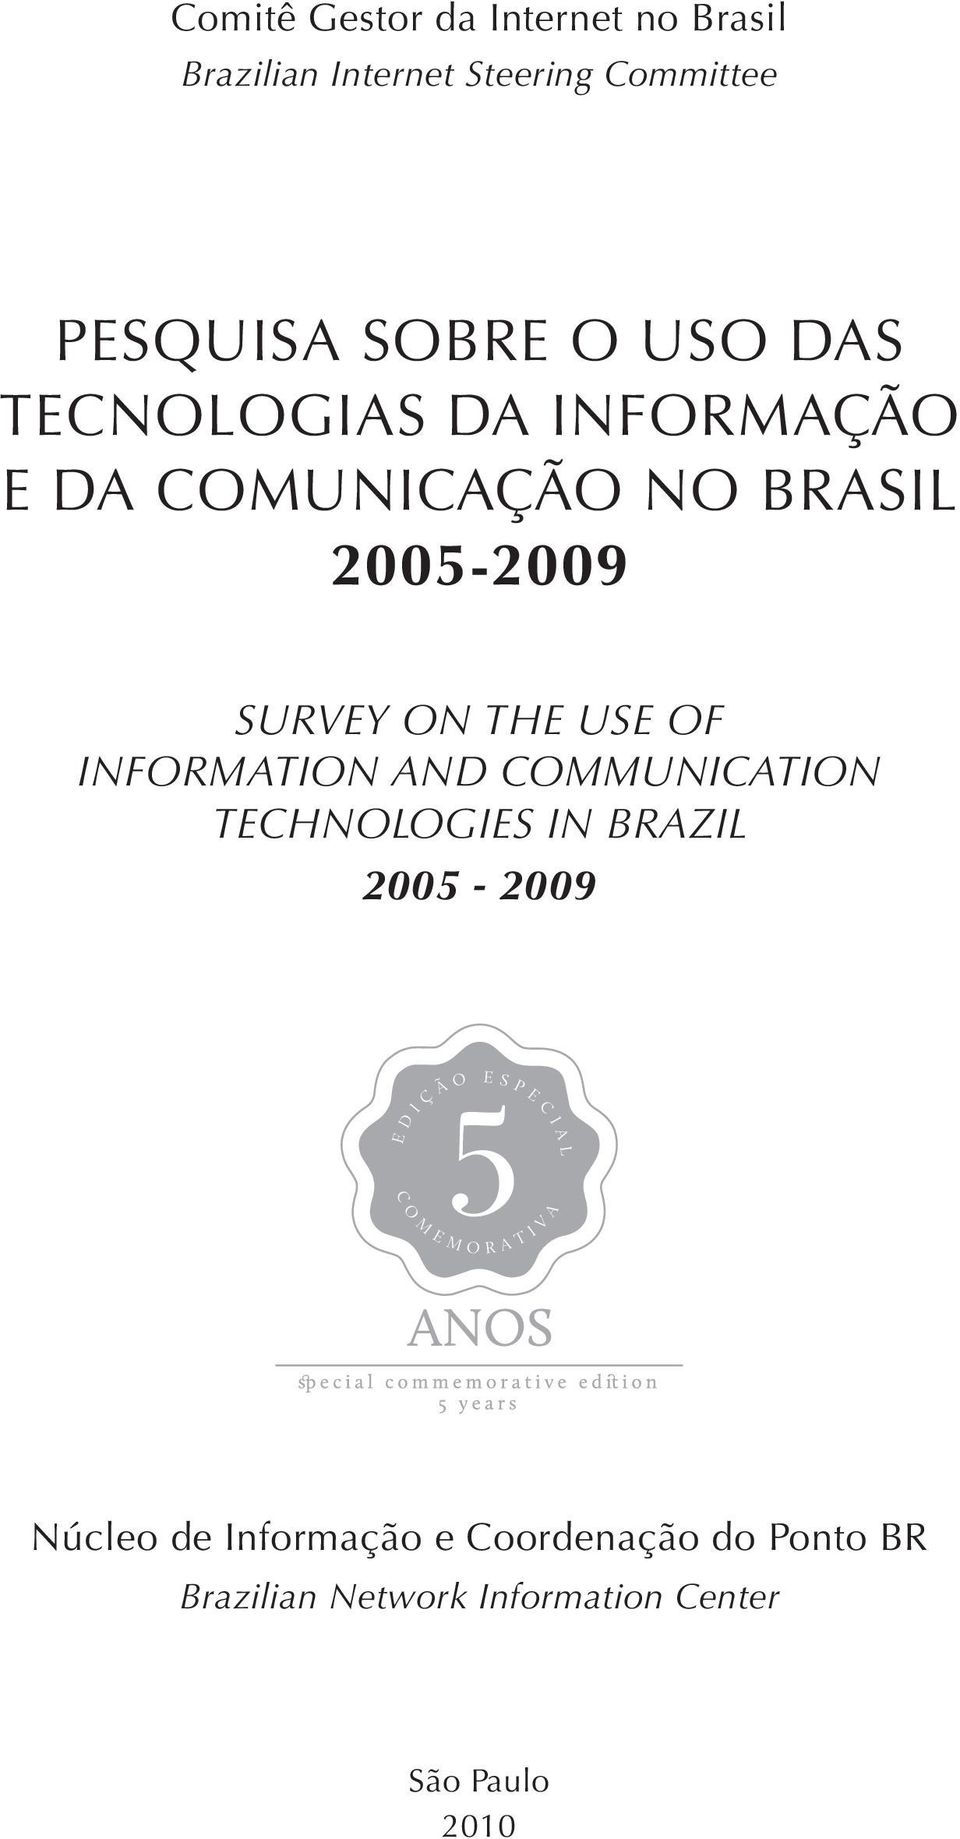 ON THE USE OF INFORMATION AND COMMUNICATION TECHNOLOGIES IN BRAZIL 2005-2009 Núcleo